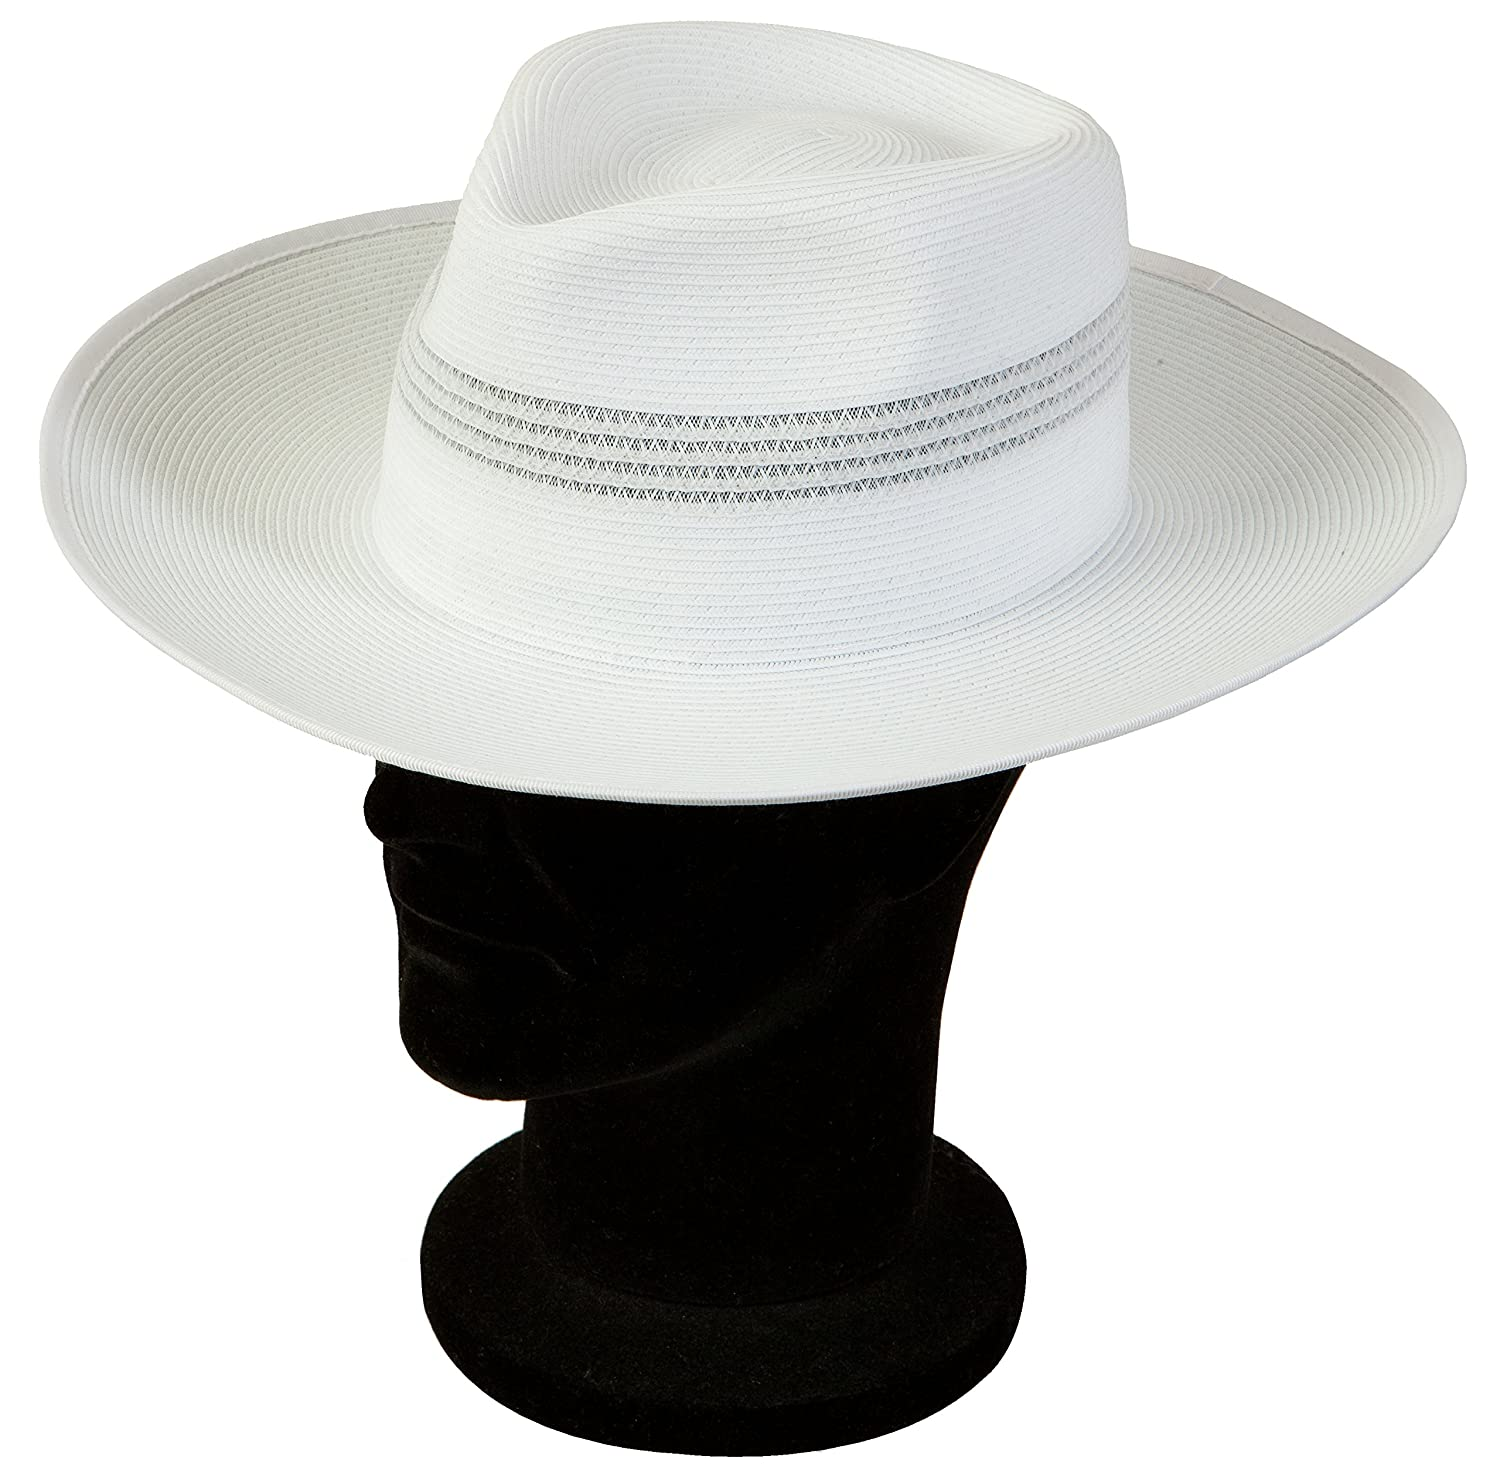 Acclaim Kalgoorlie International Cricket Umpire Summer Hat With The Stay Put Headband White